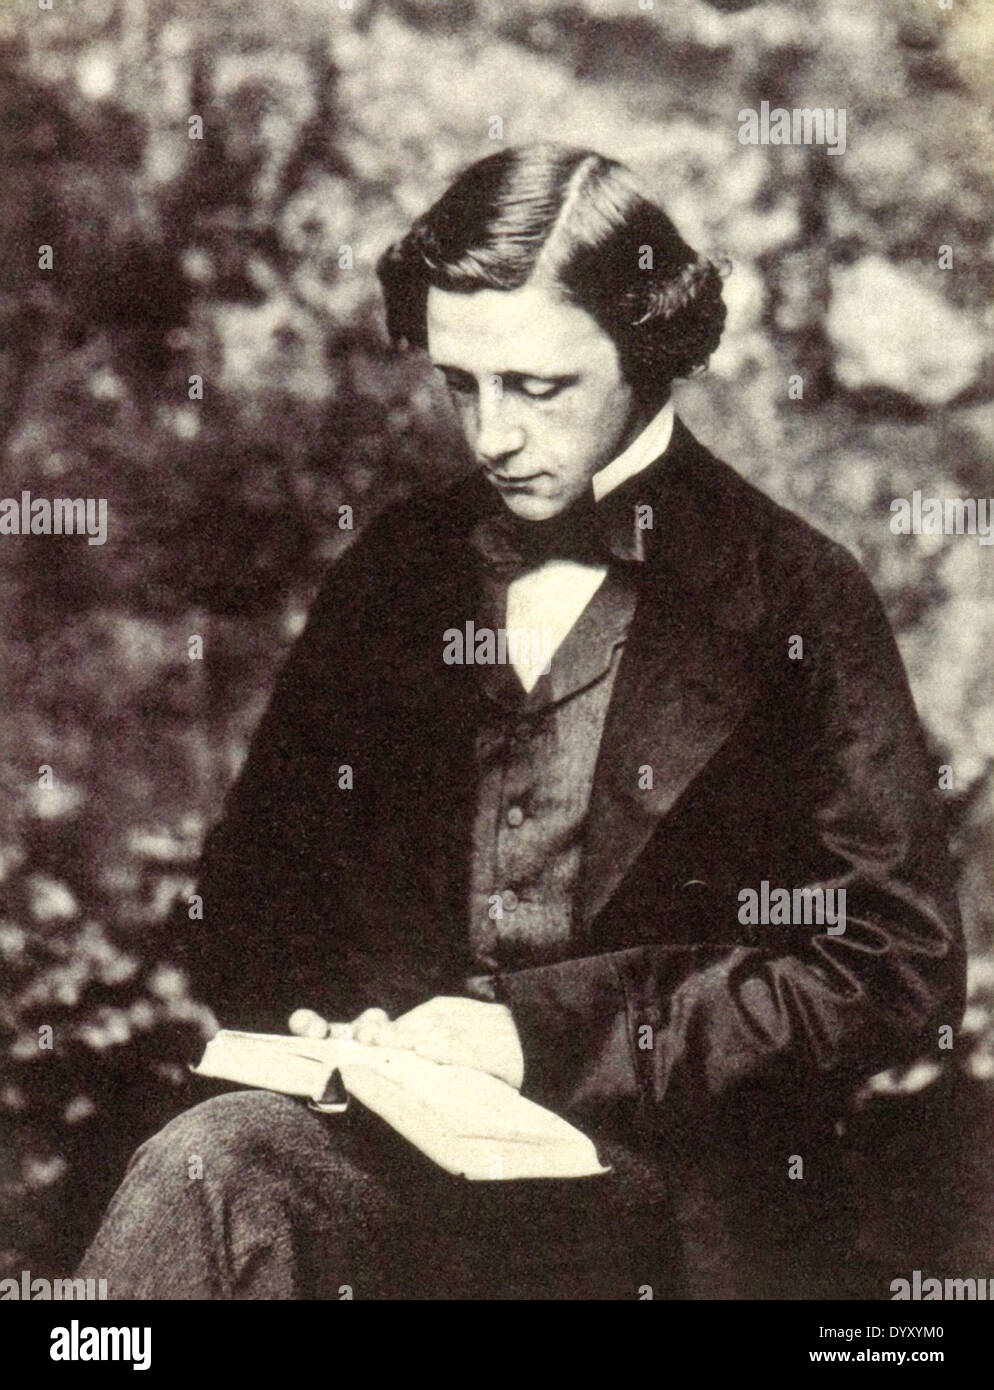 Lewis Carroll (1832-1898), English author, mathematician and photographer. Born Charles Lutwidge Dodgson, he adopted the pen name Lewis Carroll publishing Alice's Adventures in Wonderland in 1865. - Stock Image